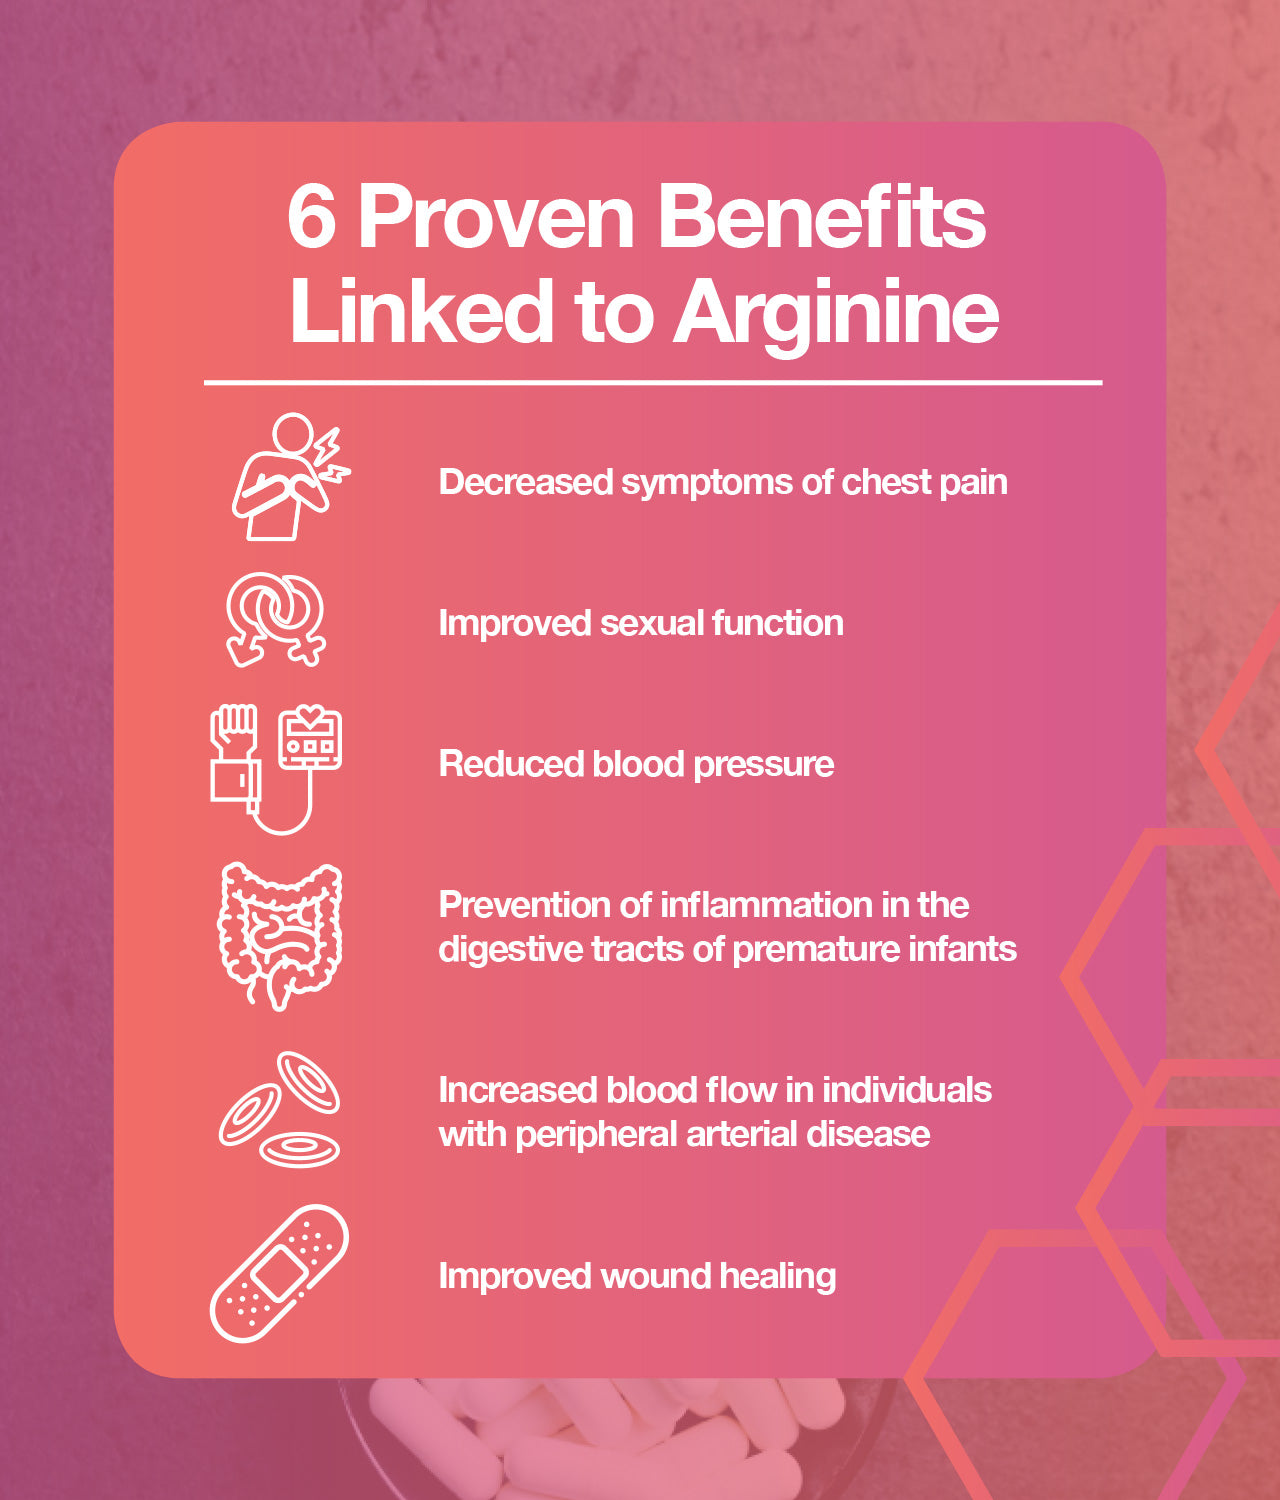 Proven benefits of arginine